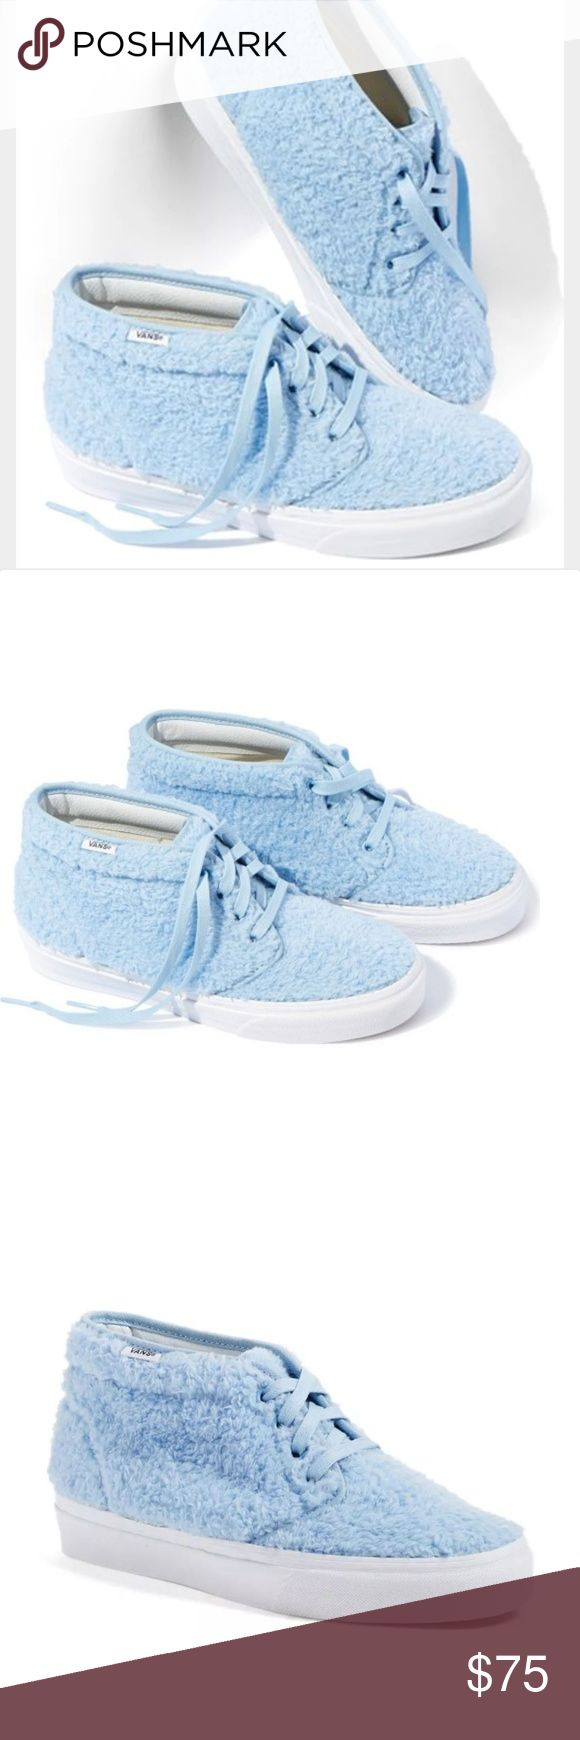 Nwt VERY RARE Van Faux Shearling Chukka Sneakers Very rare and sold out Nwt Van Faux Shearling Chukka Sneaker (Unisex) (Nordstrom Exclusive) Plush, baby-blue faux shearling brings a cloud of softness to a chic chukka sneaker set on a bright white bumper sole.  Lace-up style.Textile faux-shearling upper/textile lining/rubber sole. NO BOX NO TRADES Vans Shoes Sneakers